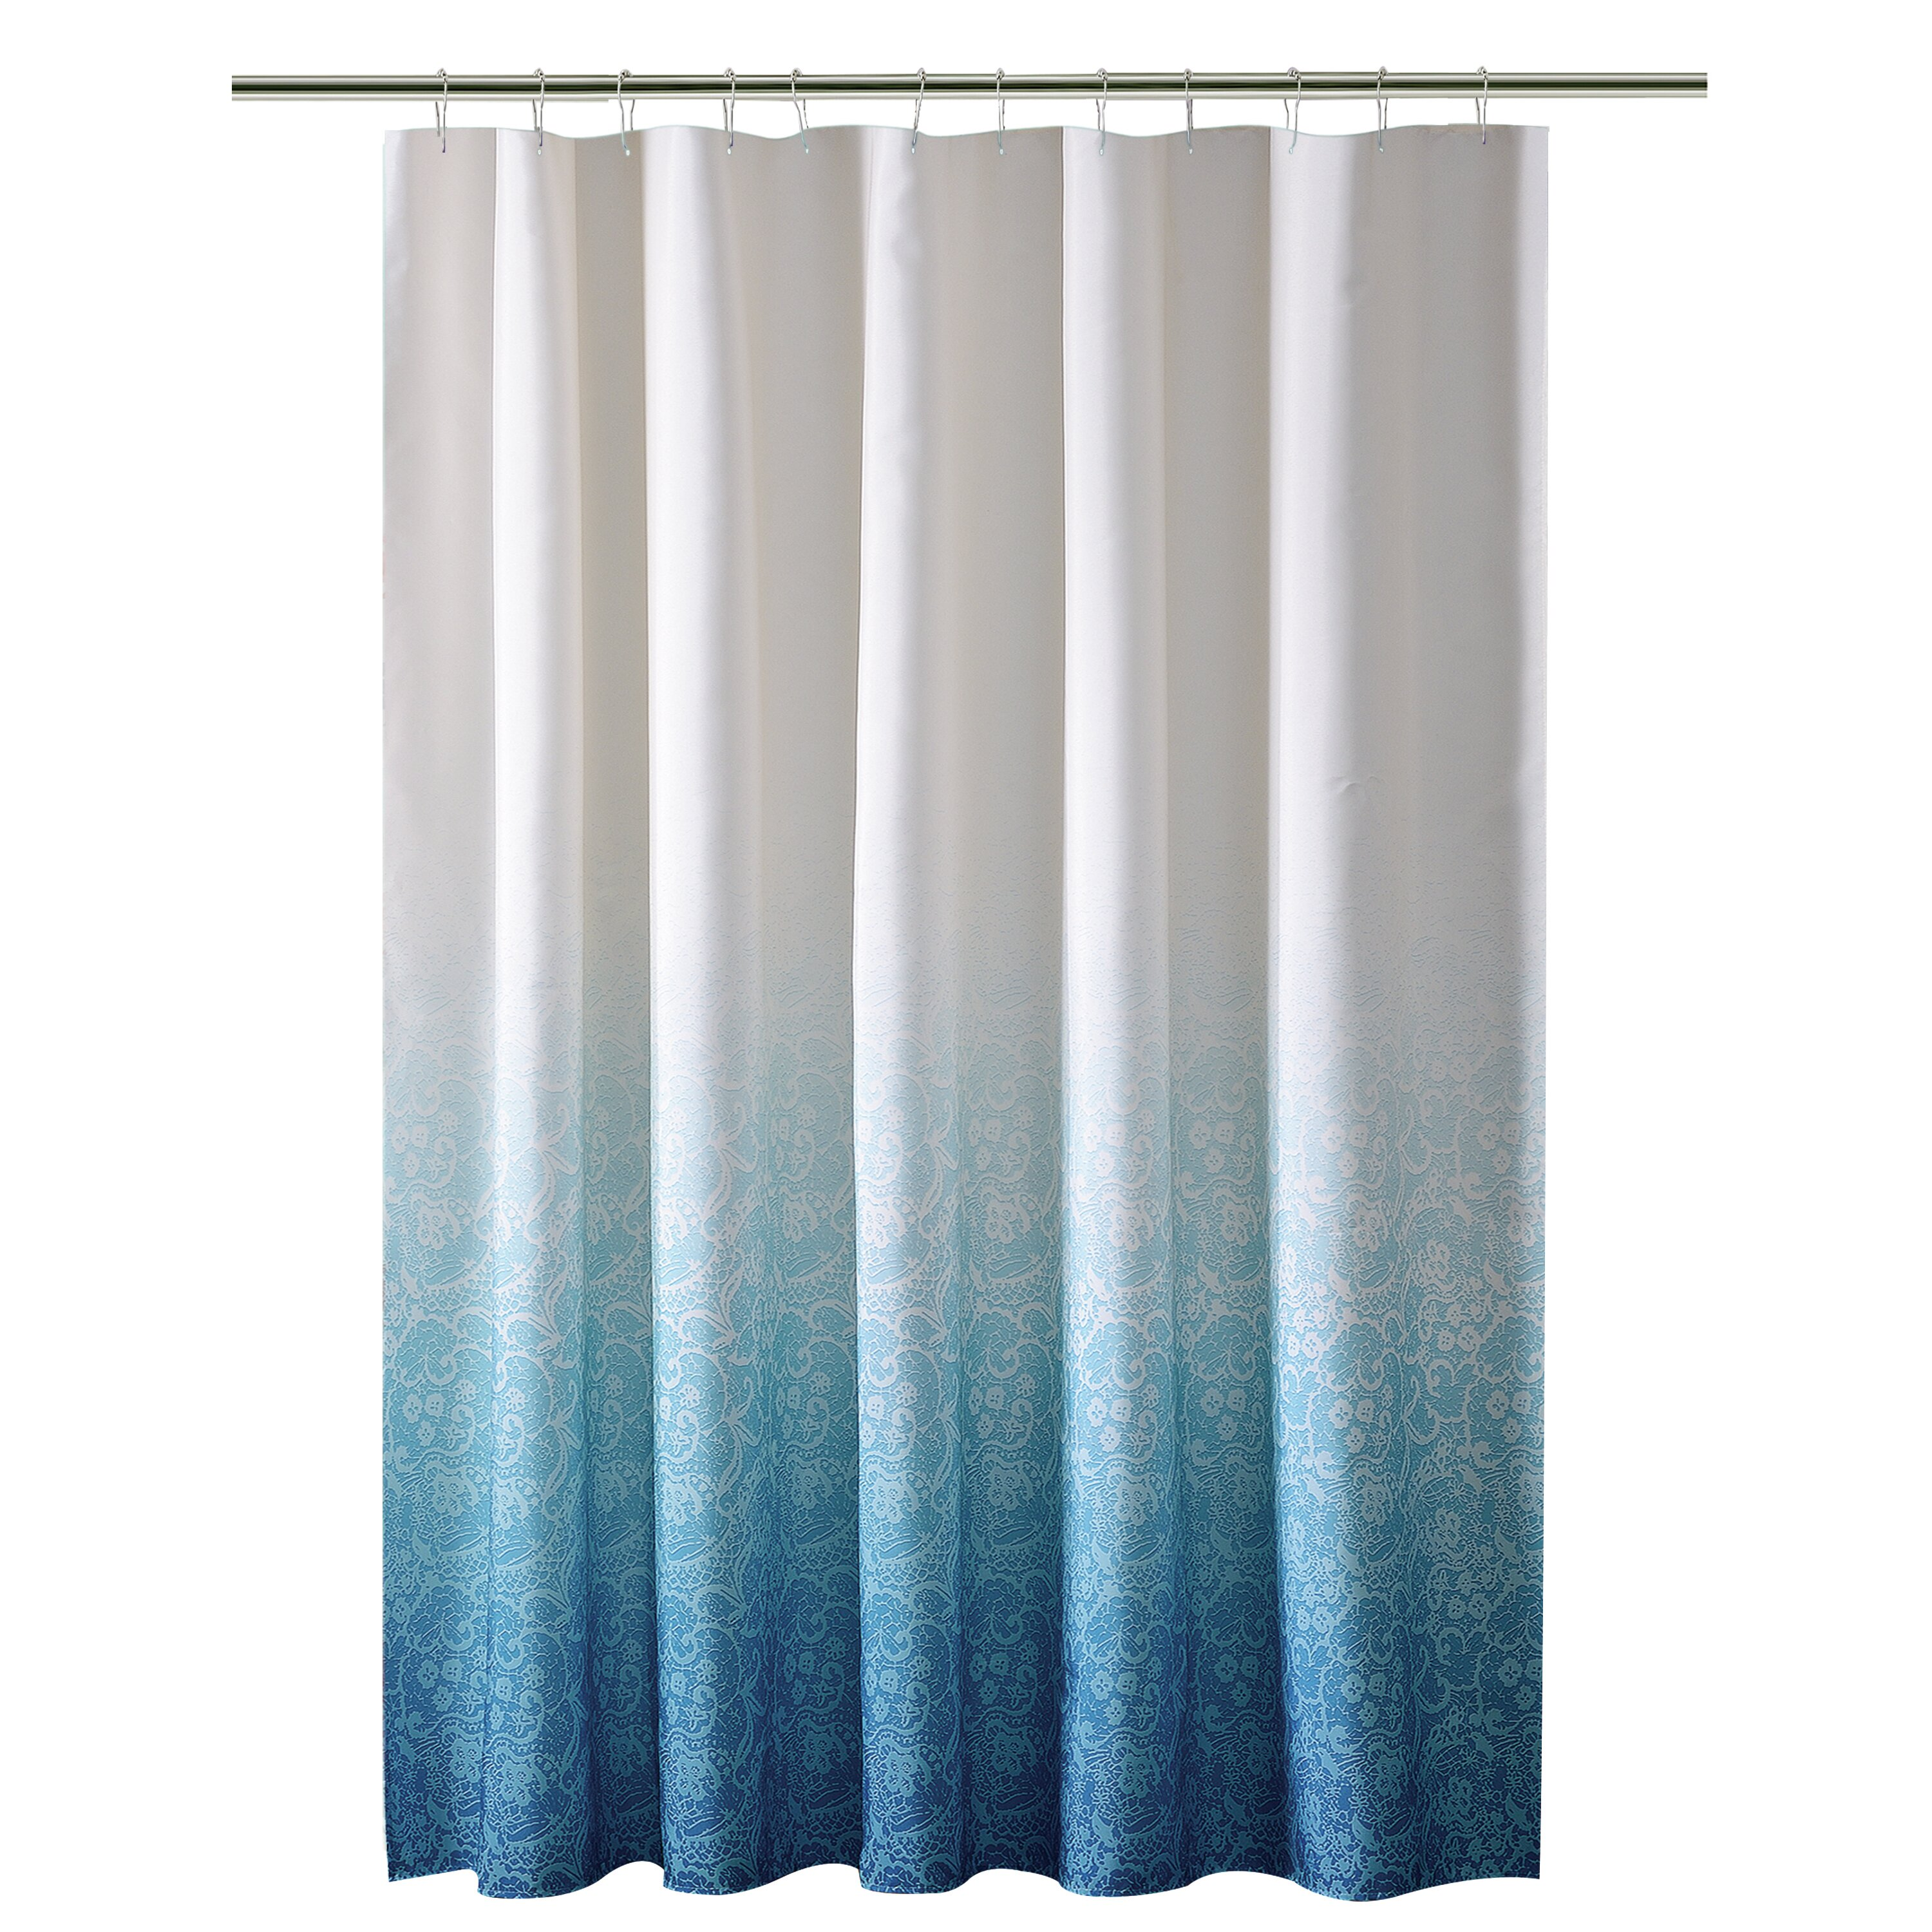 Shower Curtains Bath 13 Piece Waffle Fabric Ombre Shower